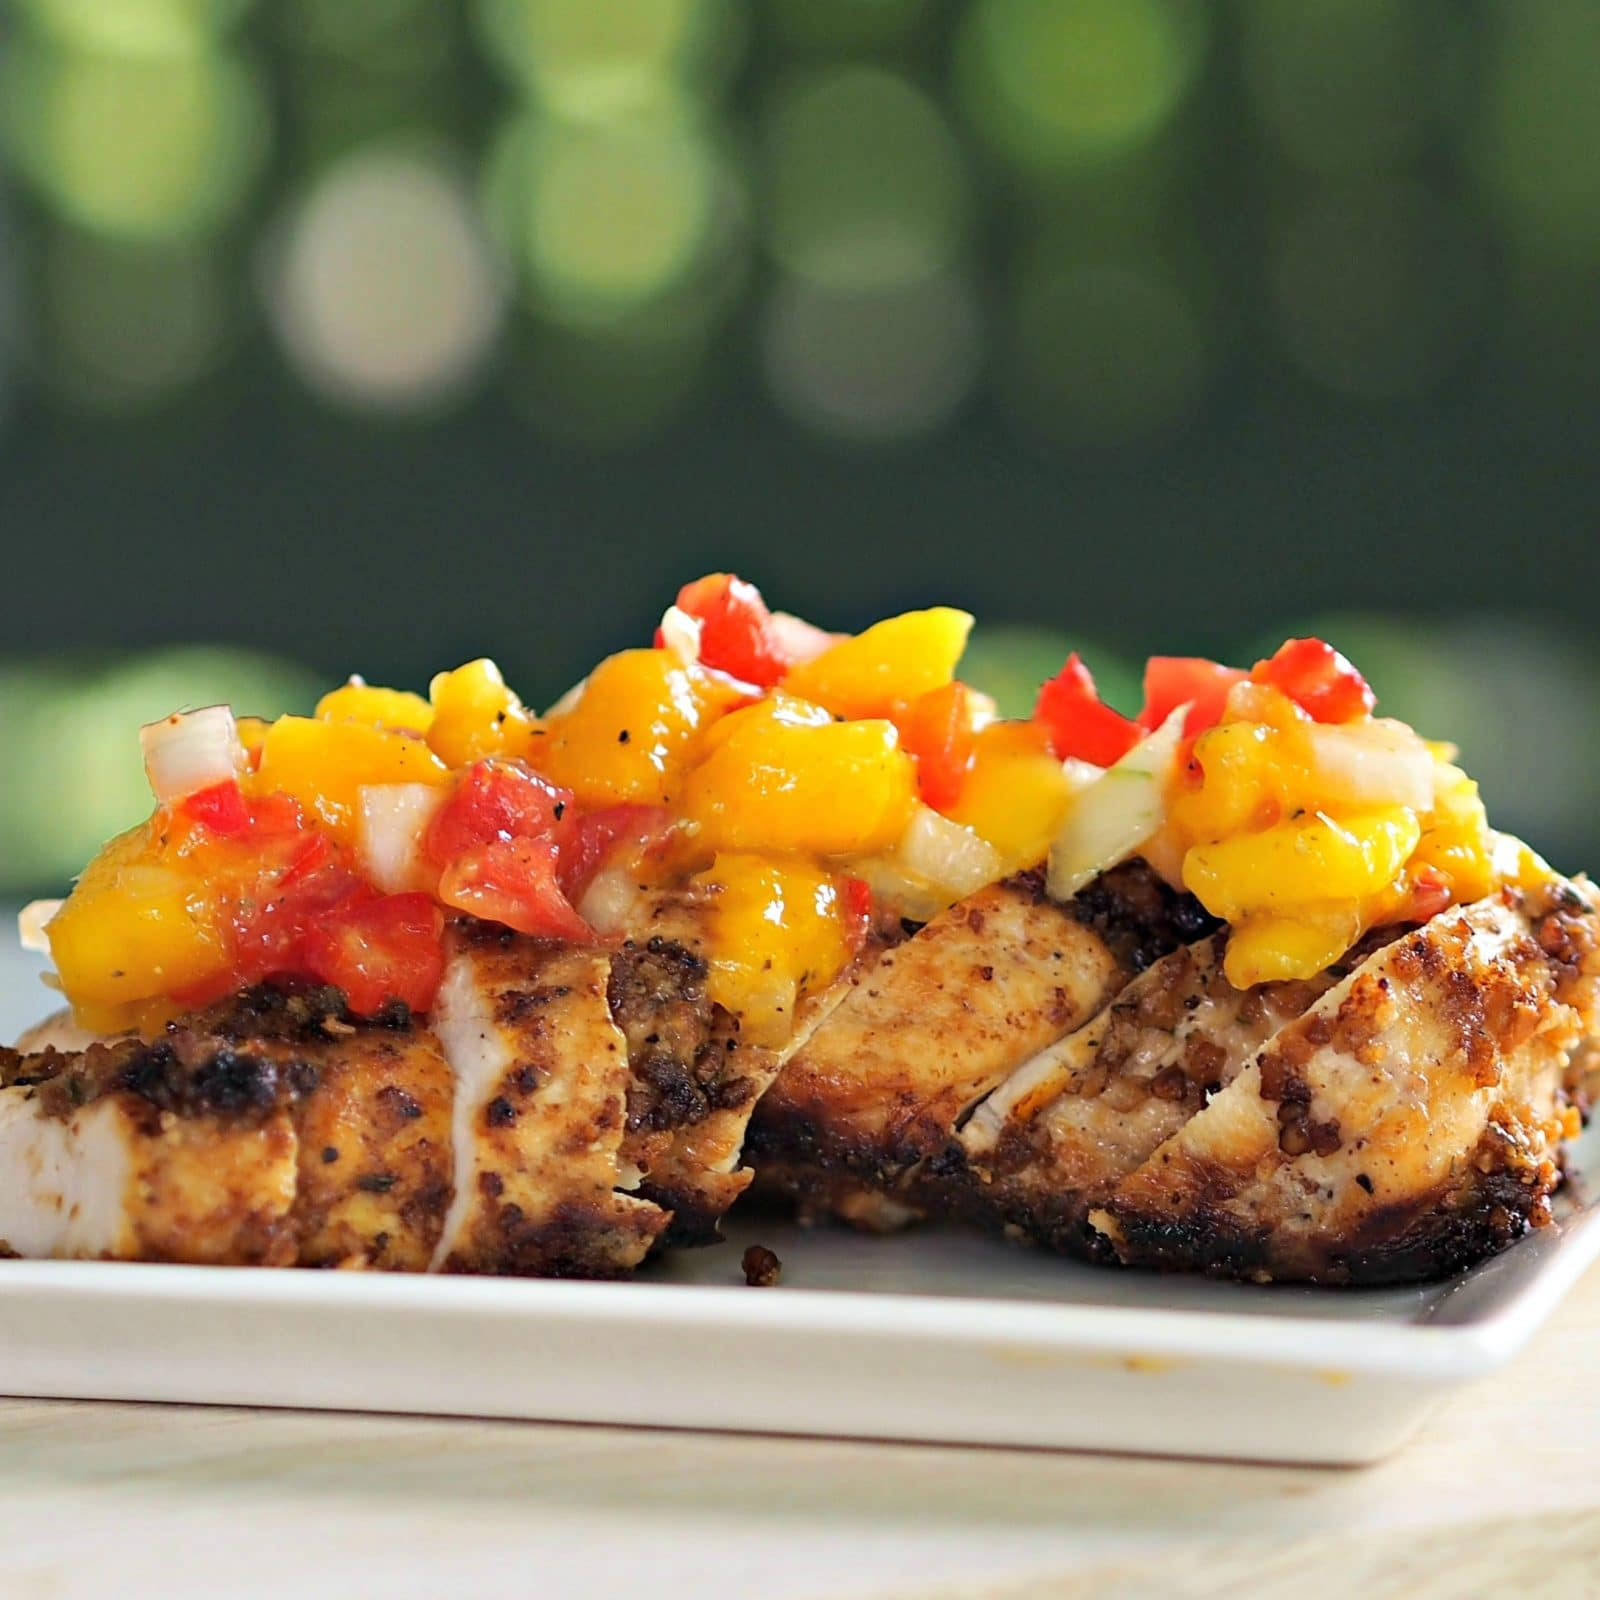 Dipped Chicken with Mango Salsa makes you feel like dancing. Chicken ...